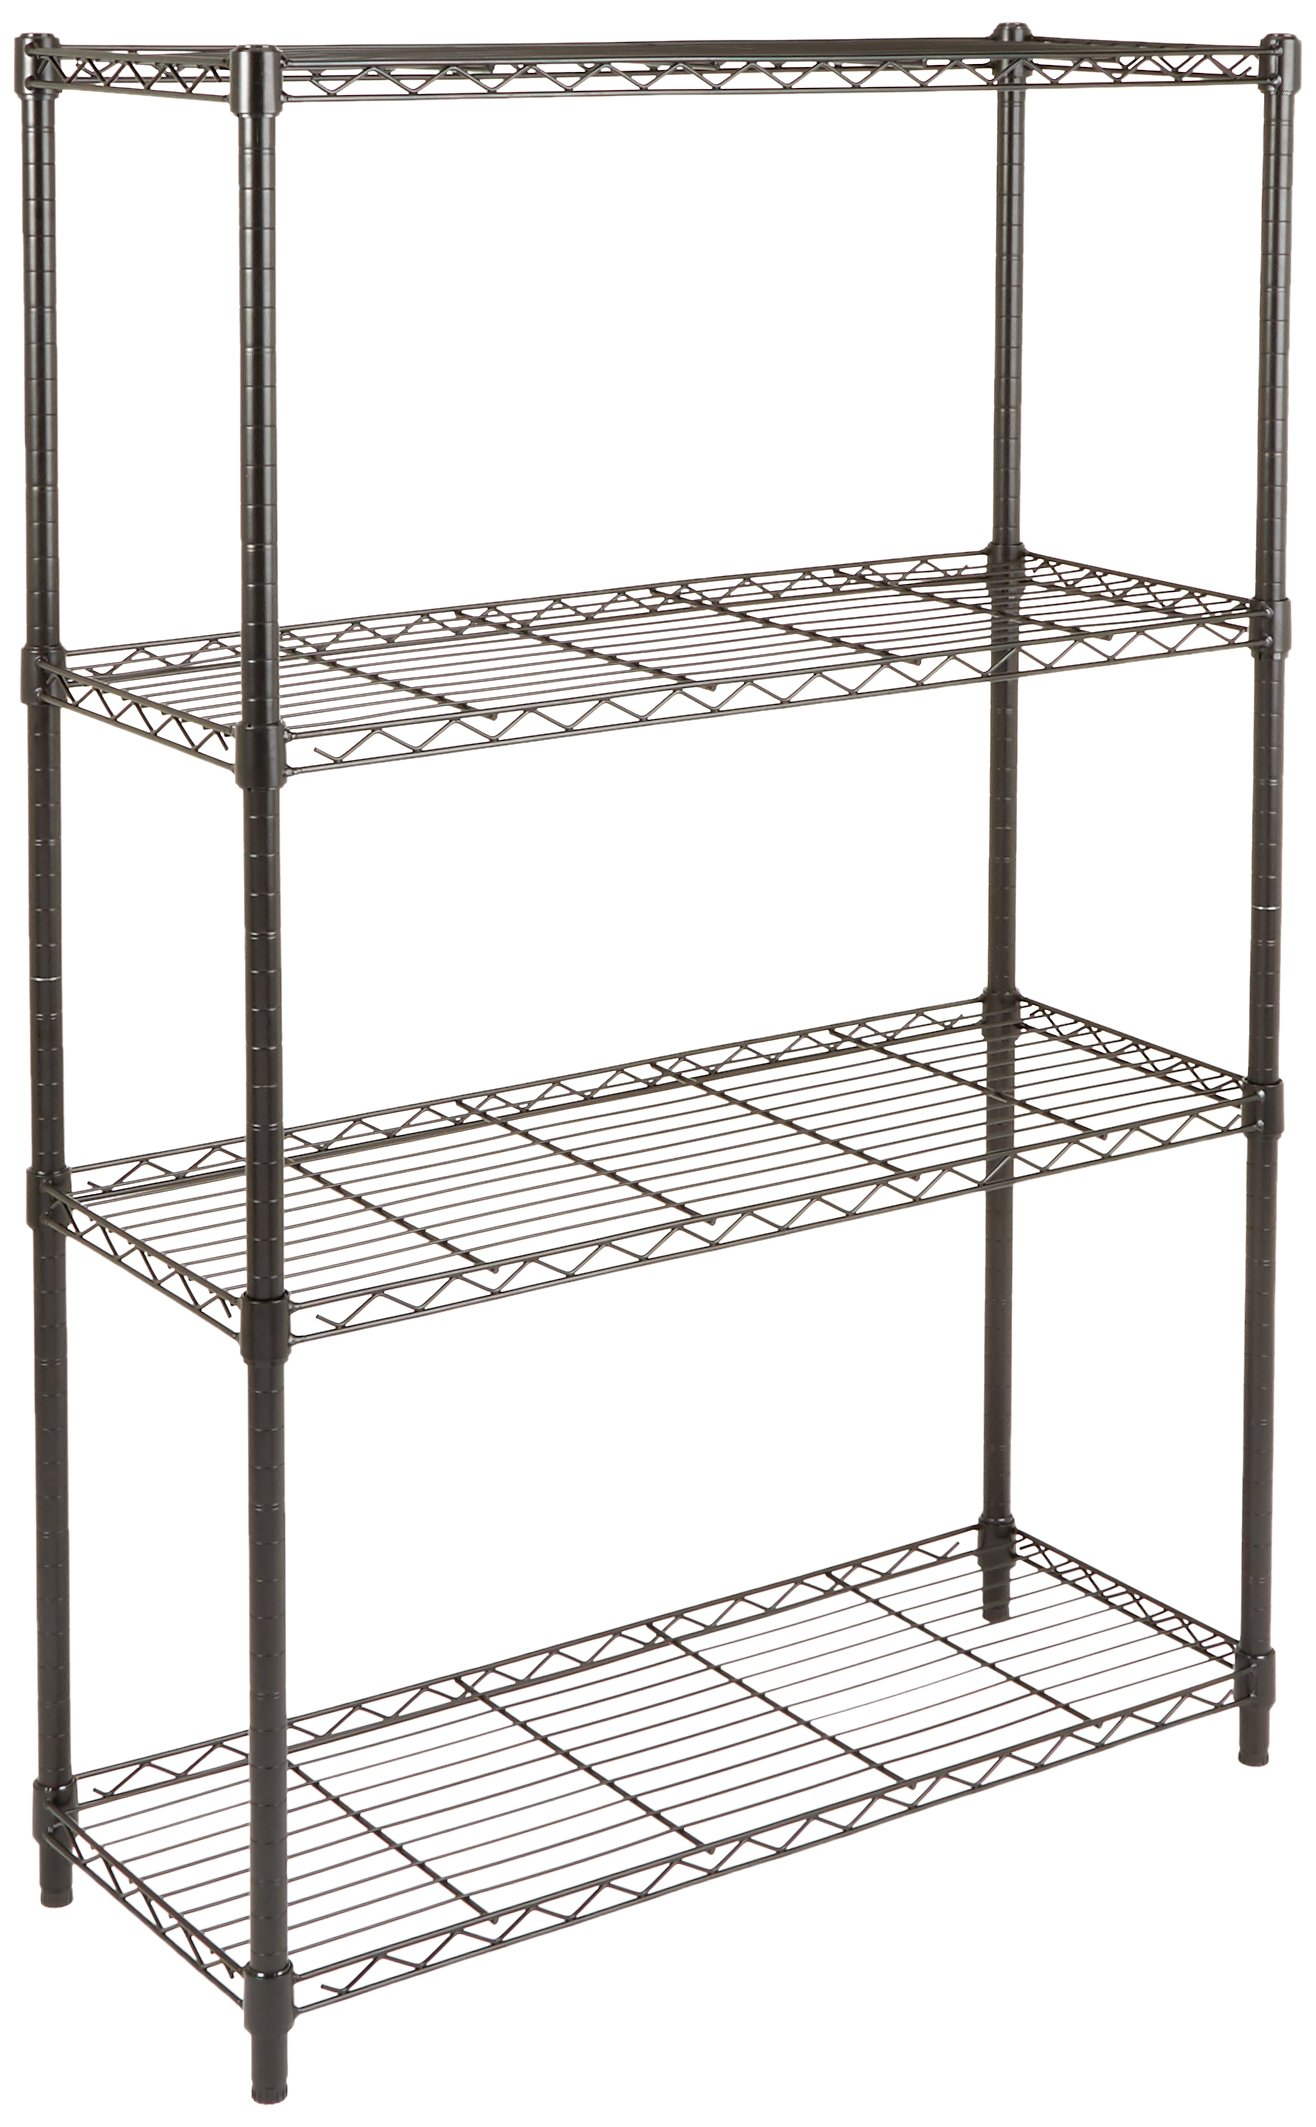 AmazonBasics 4-Shelf Shelving Unit - Black by AmazonBasics